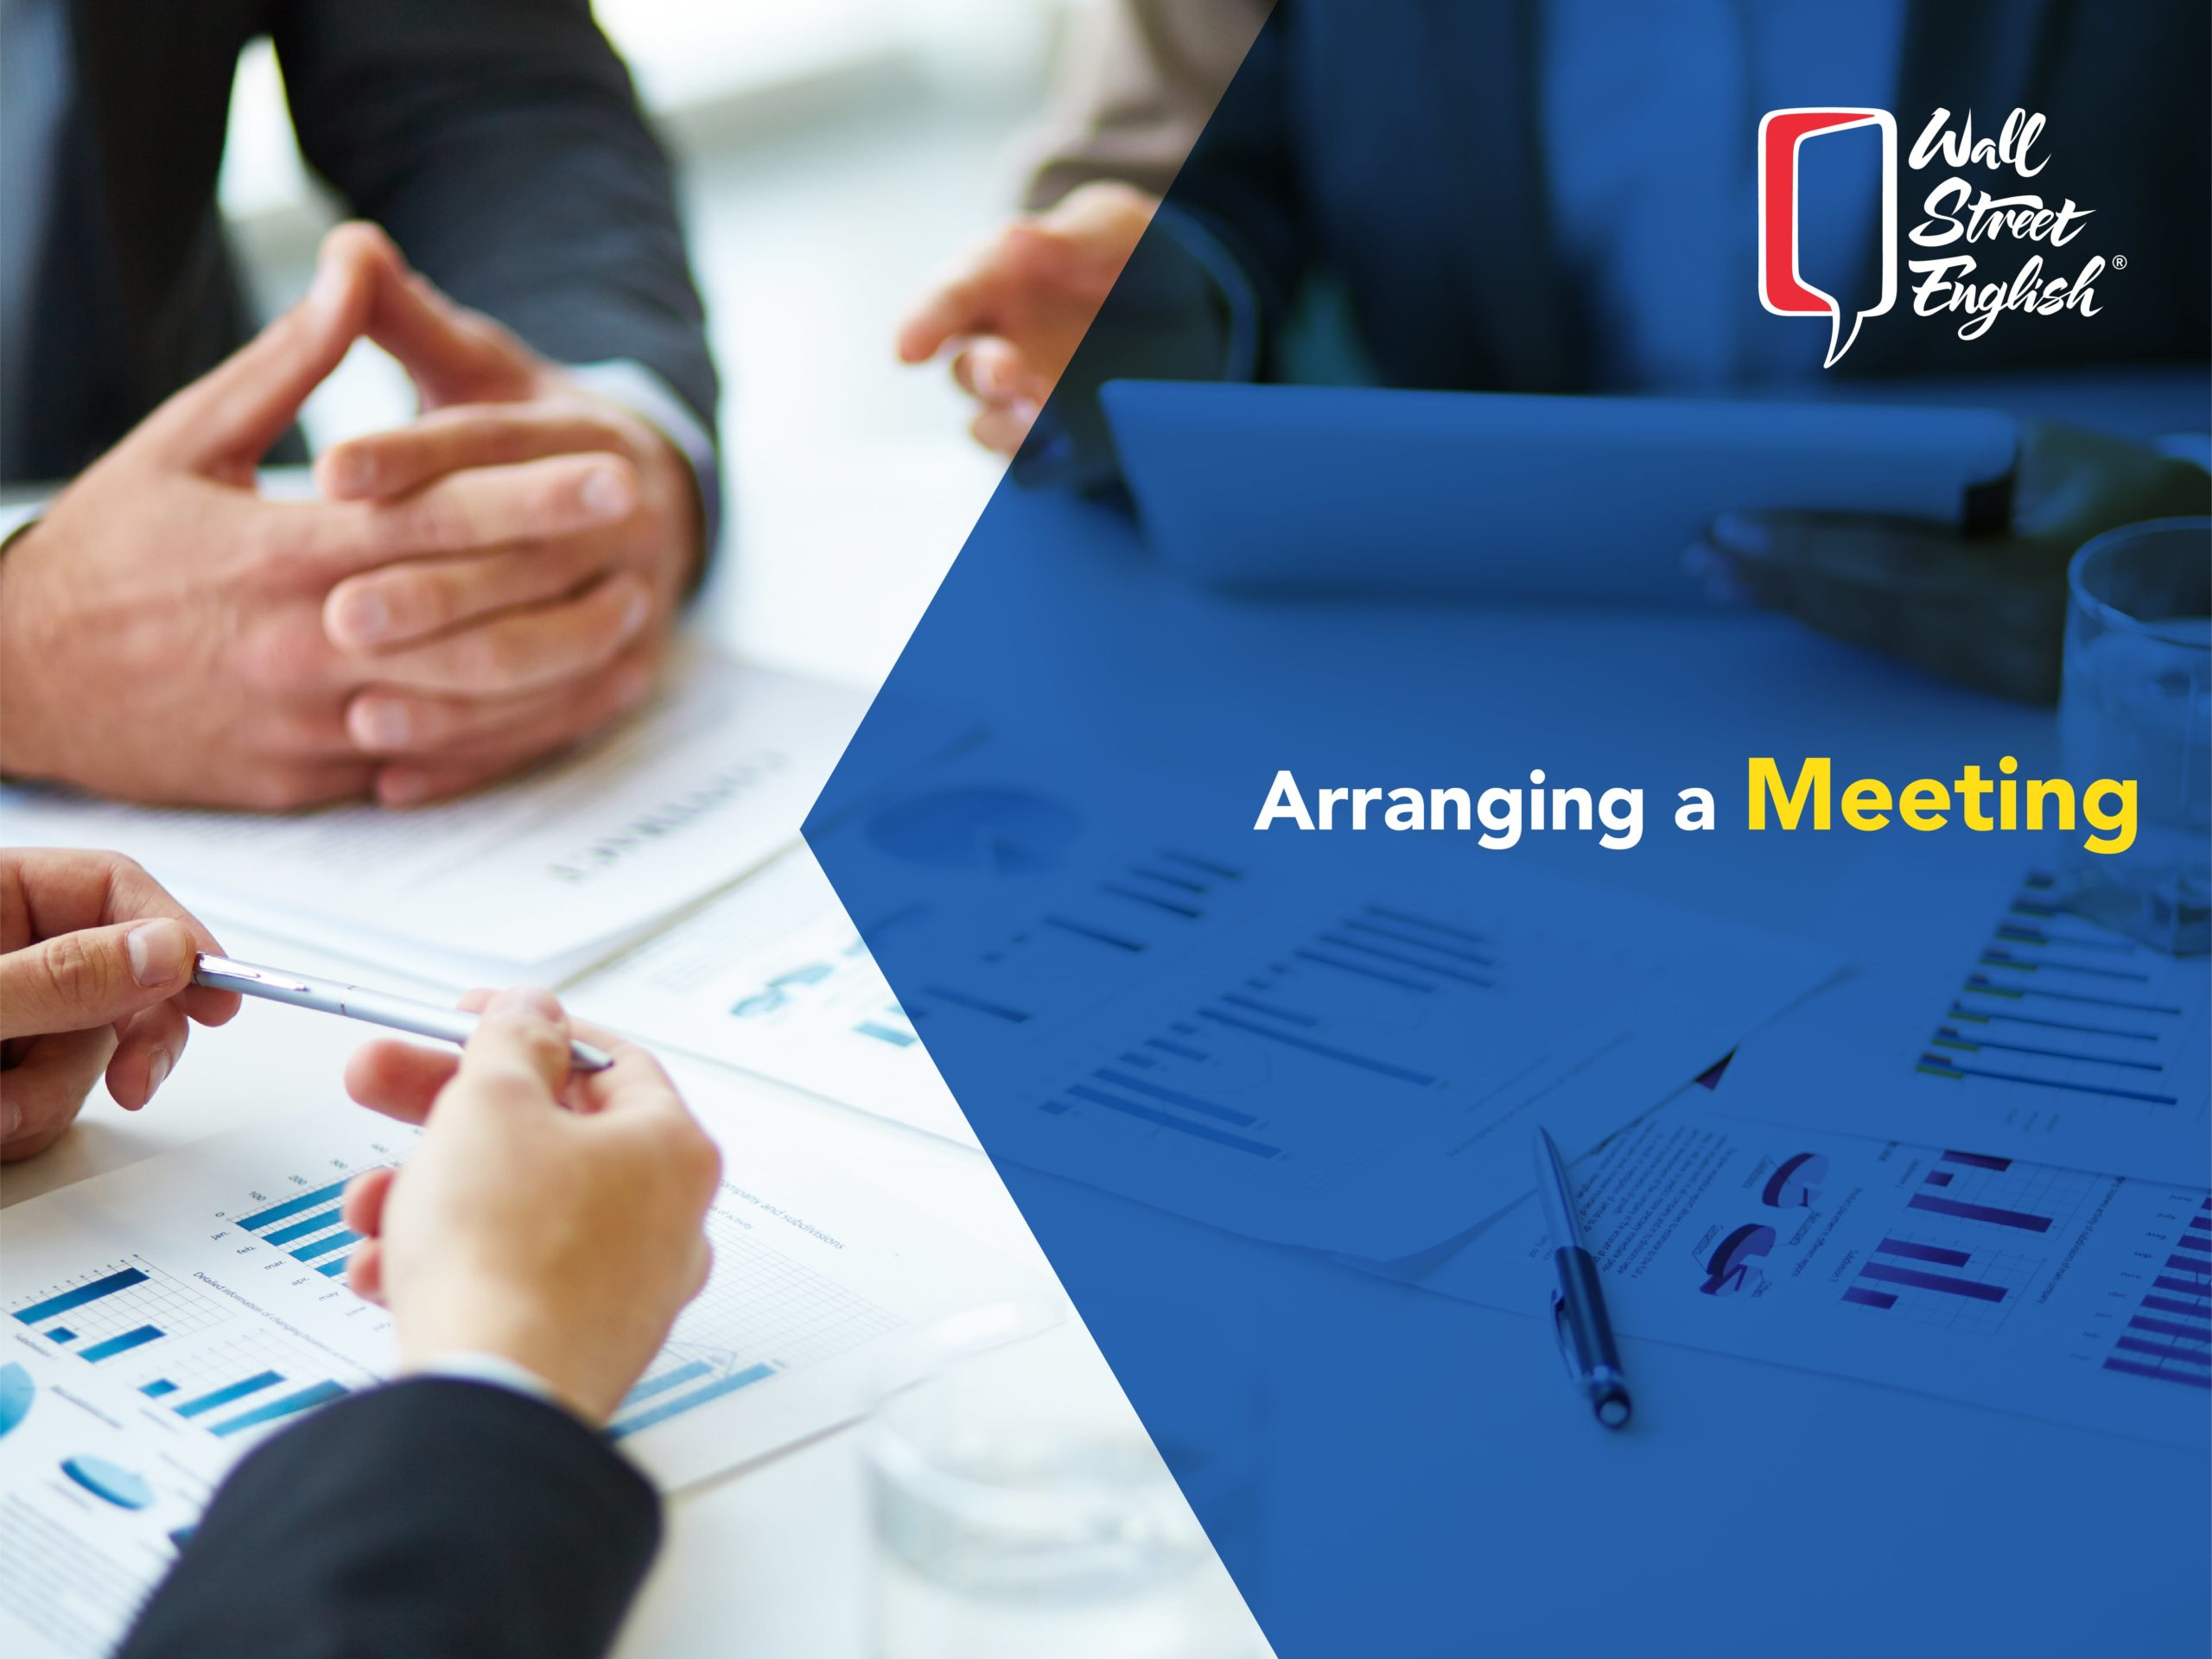 Arranging a Meeting